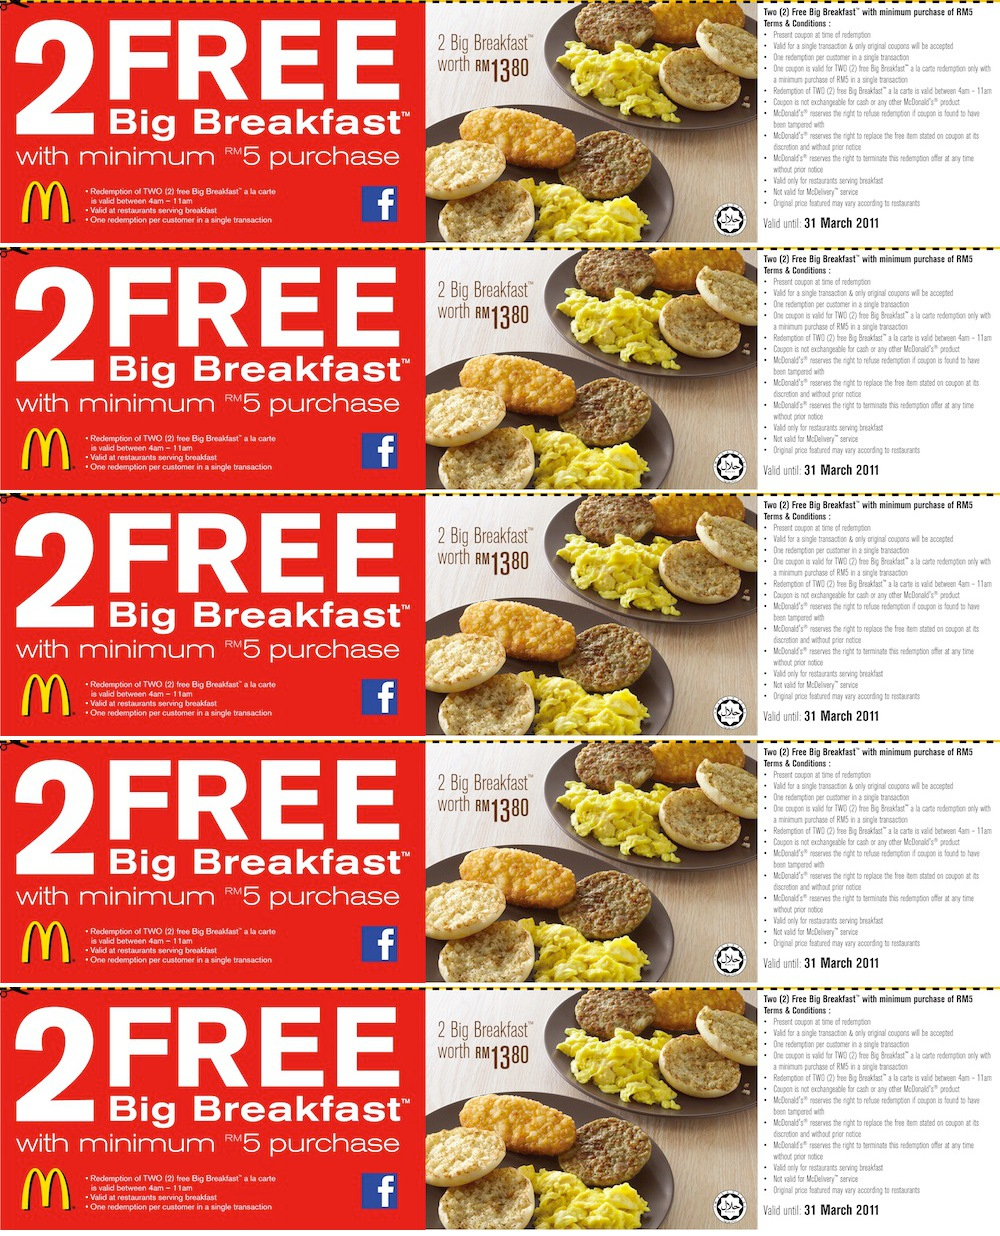 Mcdonalds Breakfast Coupons Uk : Cloudscape Coupon - Free Printable Mcdonalds Coupons Online